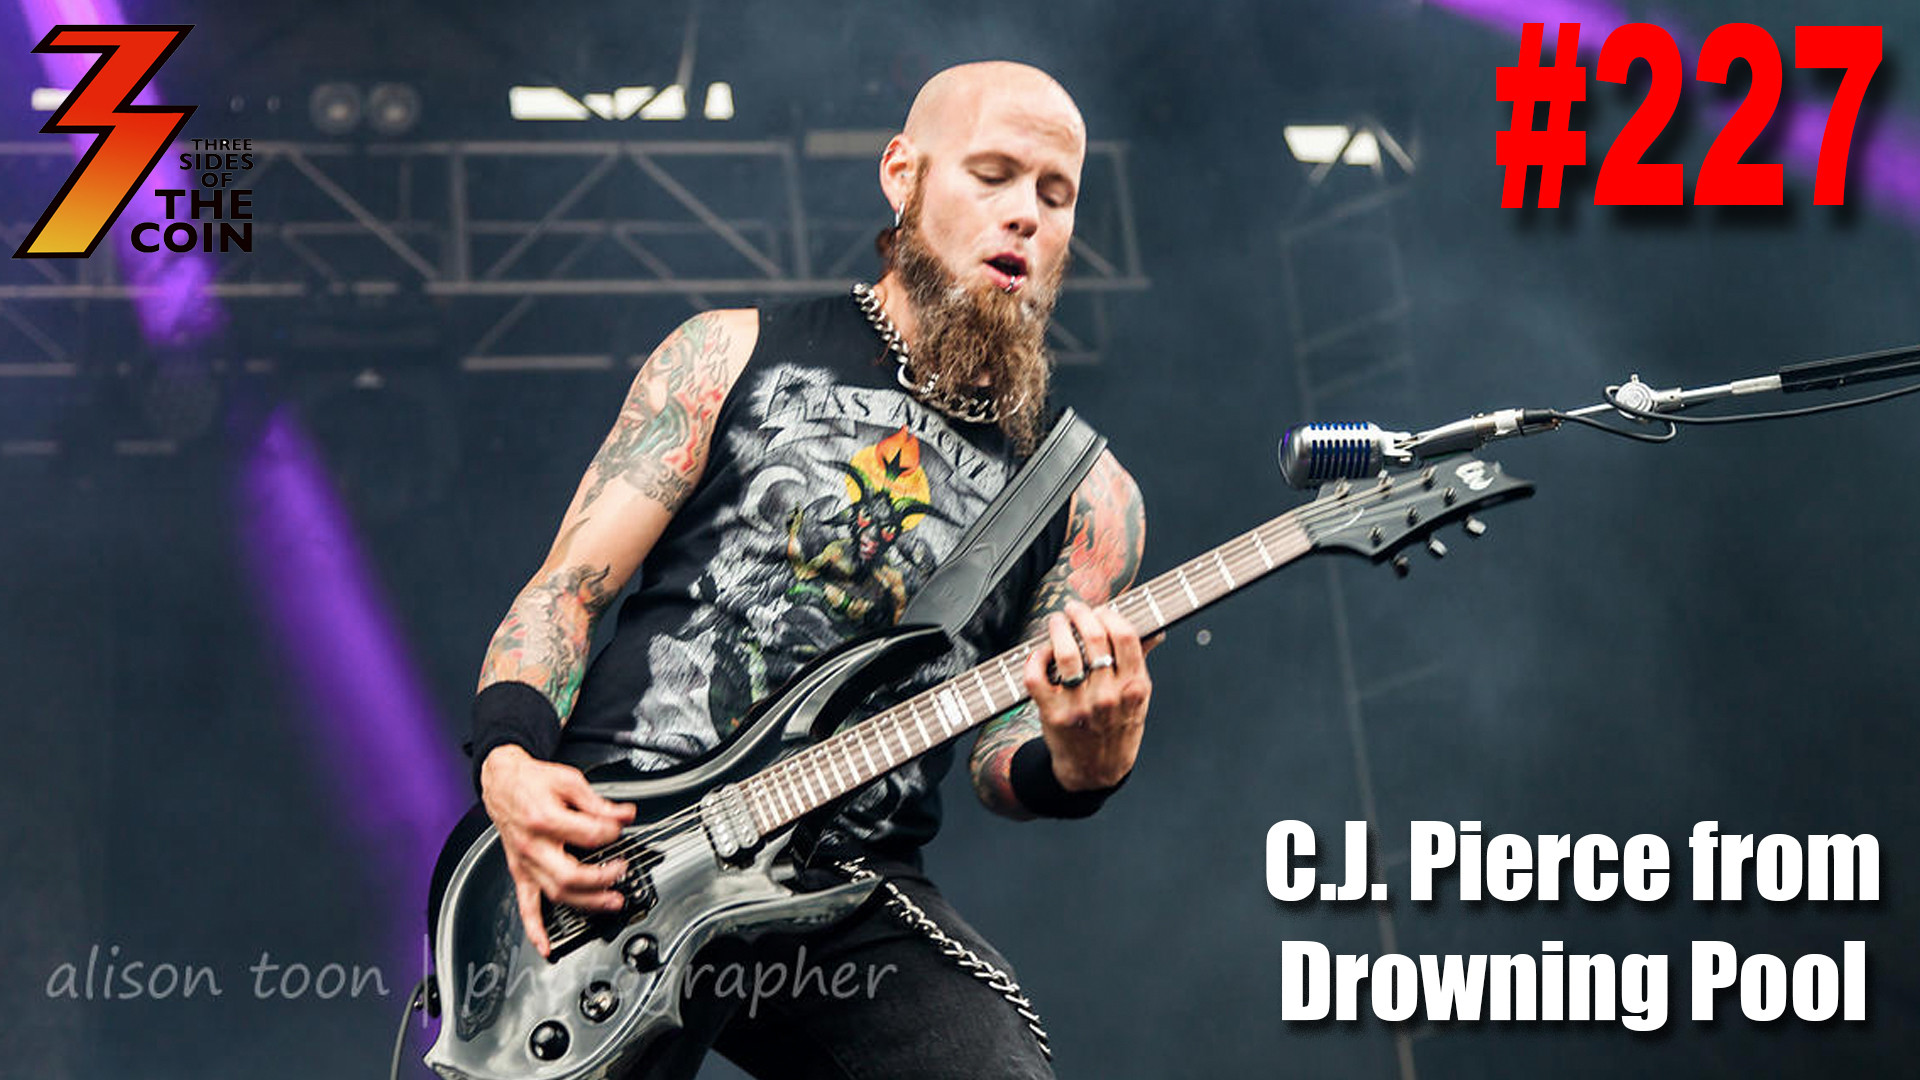 1920x1080 Ep. 227 C.J. Pierce from Drowning Pool Joins Us to Talk About His Love For  KISS | Three Sides of the Coin - A KISS Talk Show